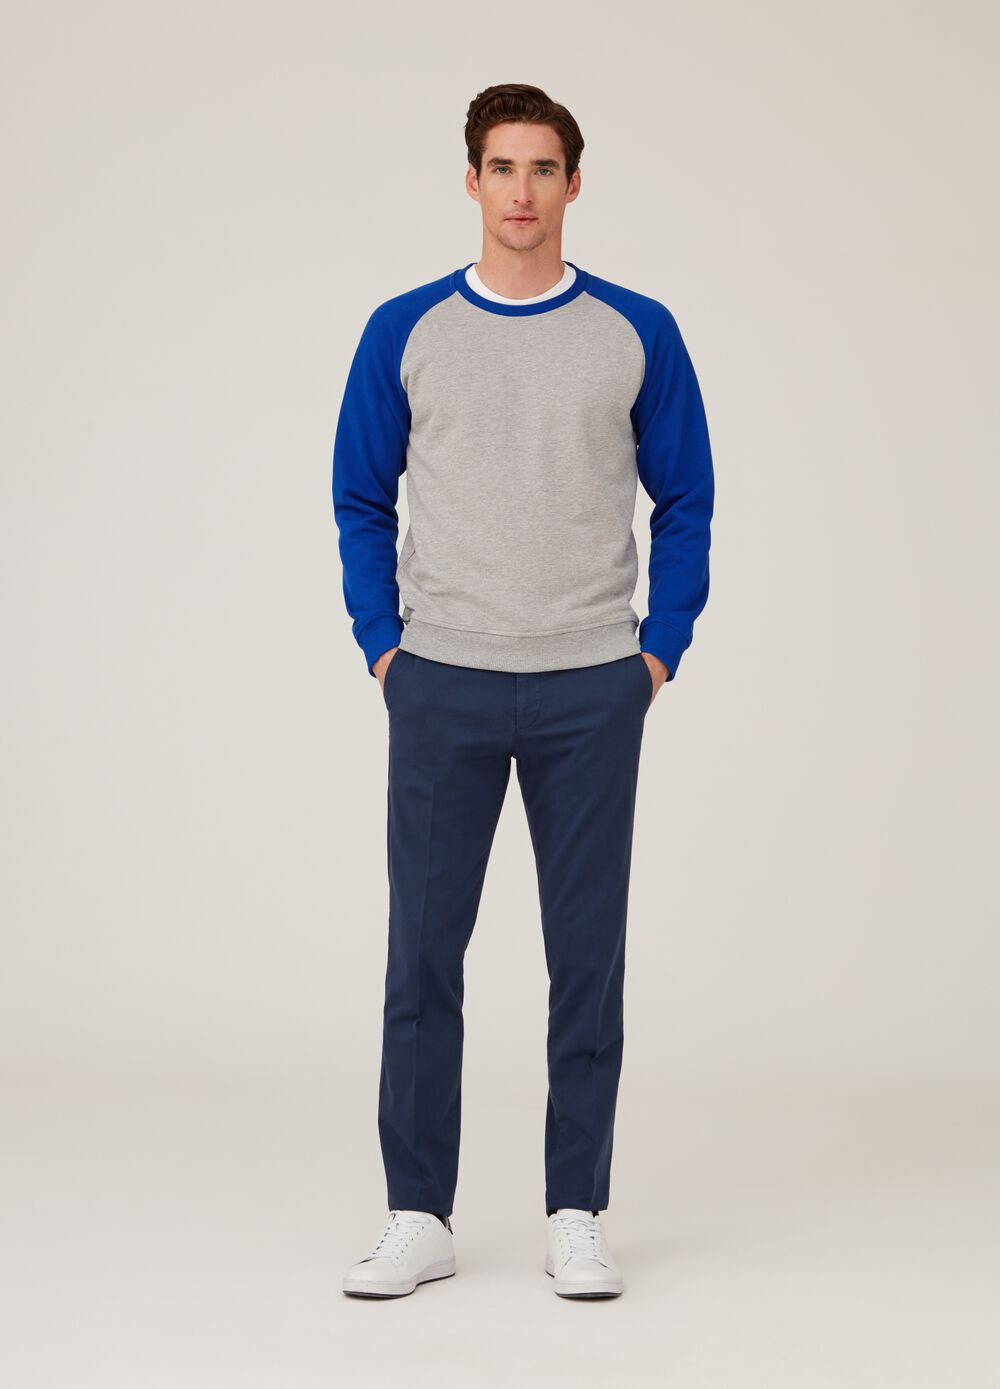 Rumford sweatshirt with raglan sleeves